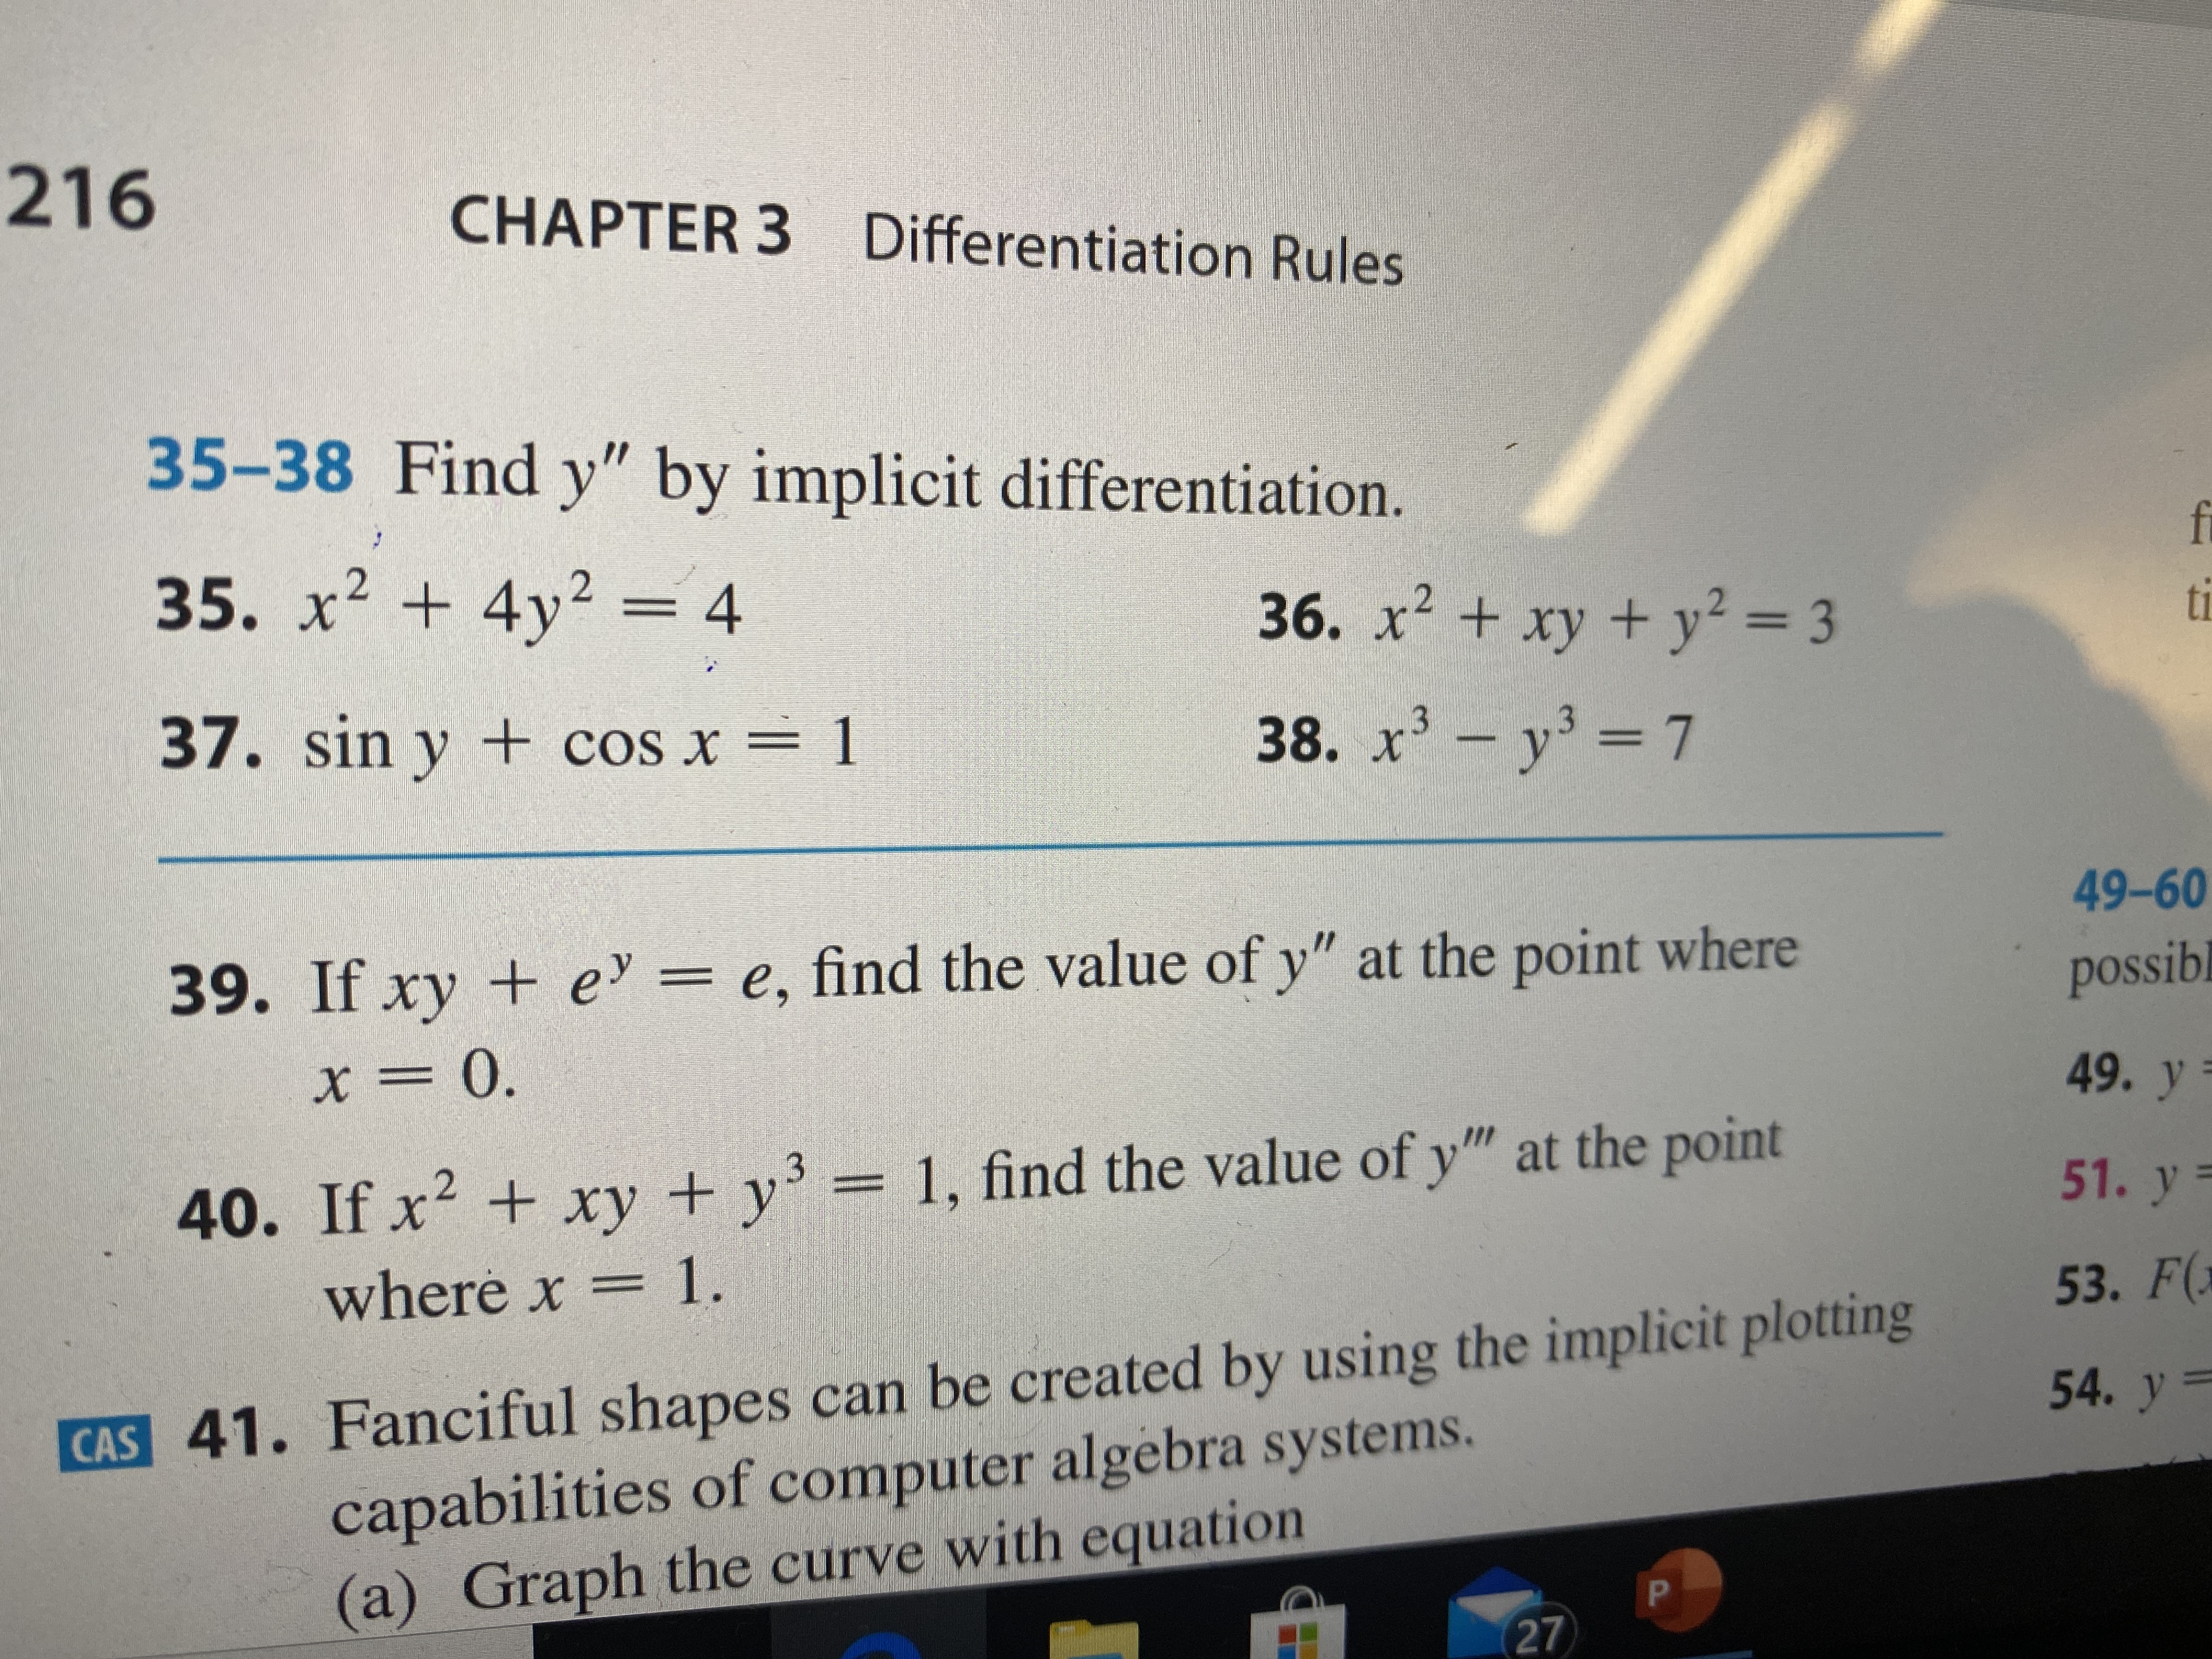 """216 CHAPTER 3 Differentiation Rules 35-38 Find y"""" by implicit differentiation. fi 35. x² + 4y2 = 4 36. x² + xy + y² = 3 ti 37. sin y + cos x = 1 38. x- y' = 7 49-60 39. If xy + e = e, find the value of y"""" at the point where possibl X = 0. 49. y 40. If x2 + xy + y'= 1, find the value of y"""" at the point 51. y = where x = 1. 53. F( CAS 41. Fanciful shapes can be created by using the implicit plotting capabilities of computer algebra systems. (a) Graph the curve with equation 54. y = 27"""